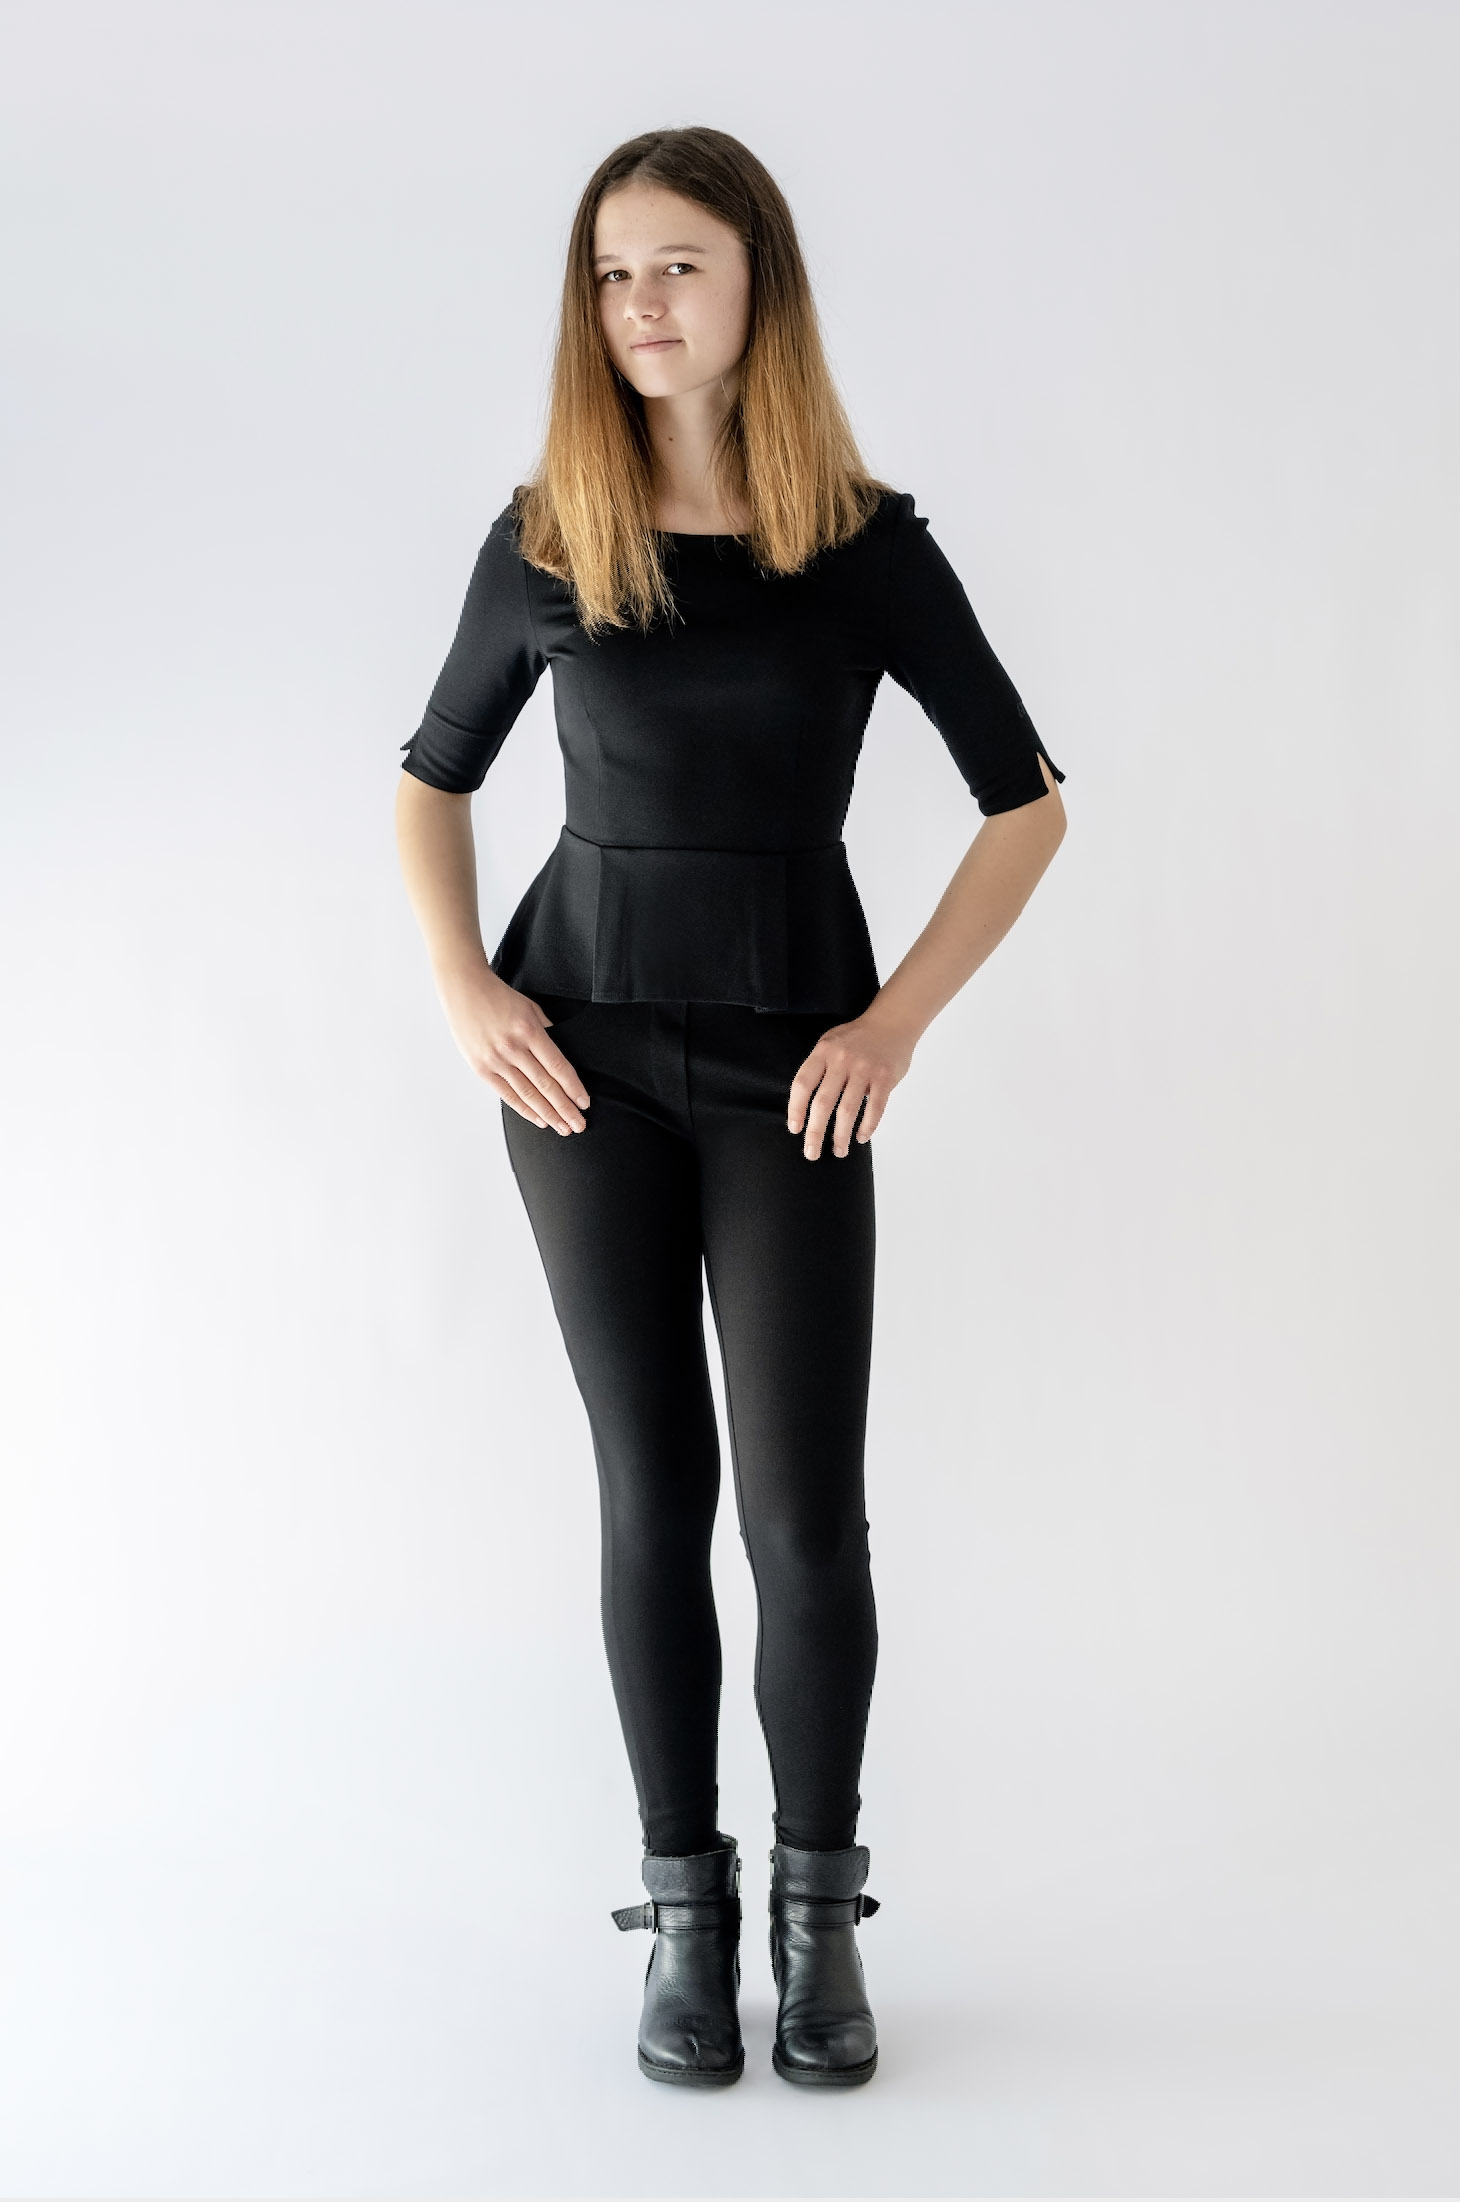 girl wearing black top and black pant